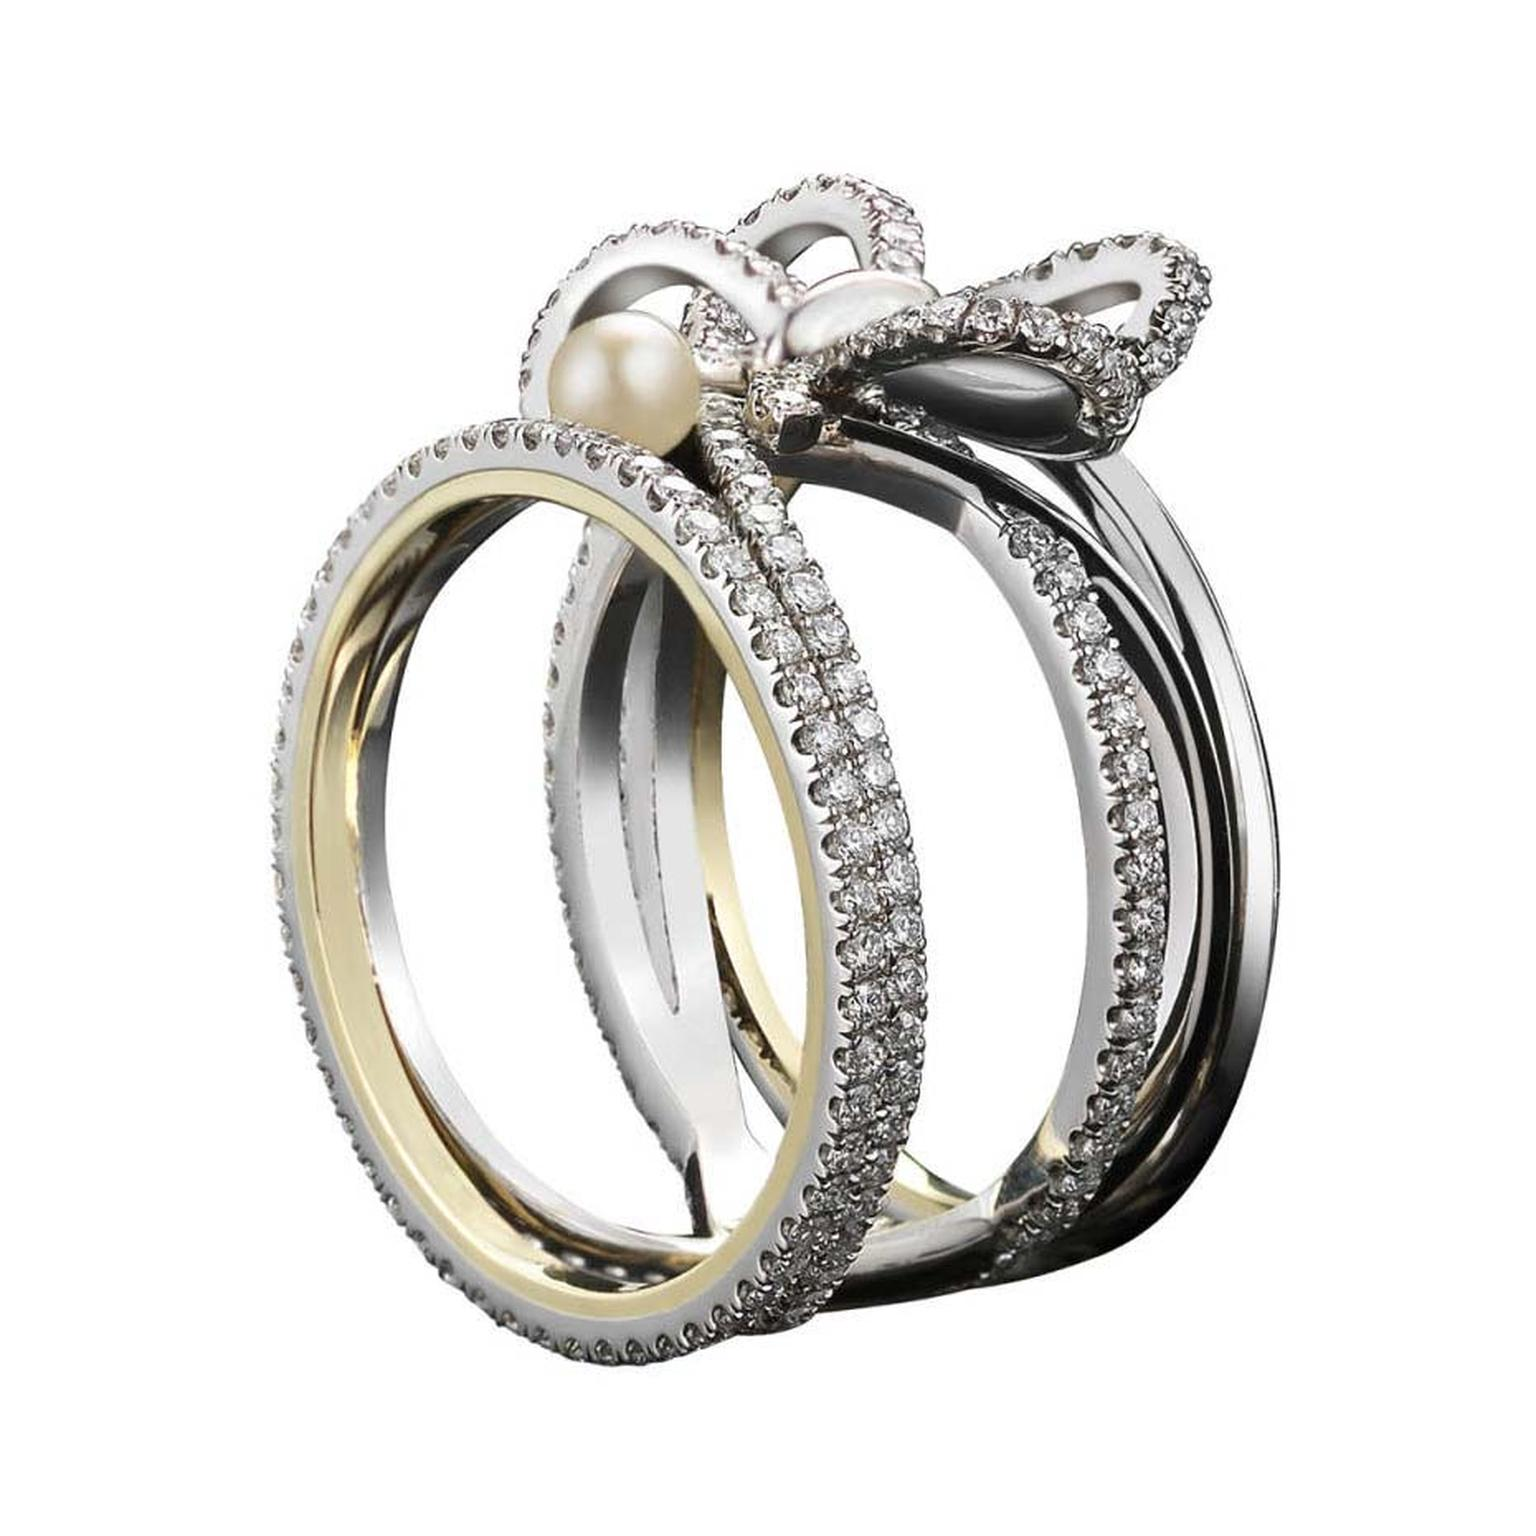 Diamond Bow and Pearl ring by Alexandra Mor jewelry with the designer's signature 1mm knife-edged wire, set in platinum around inner bands of yellow gold.